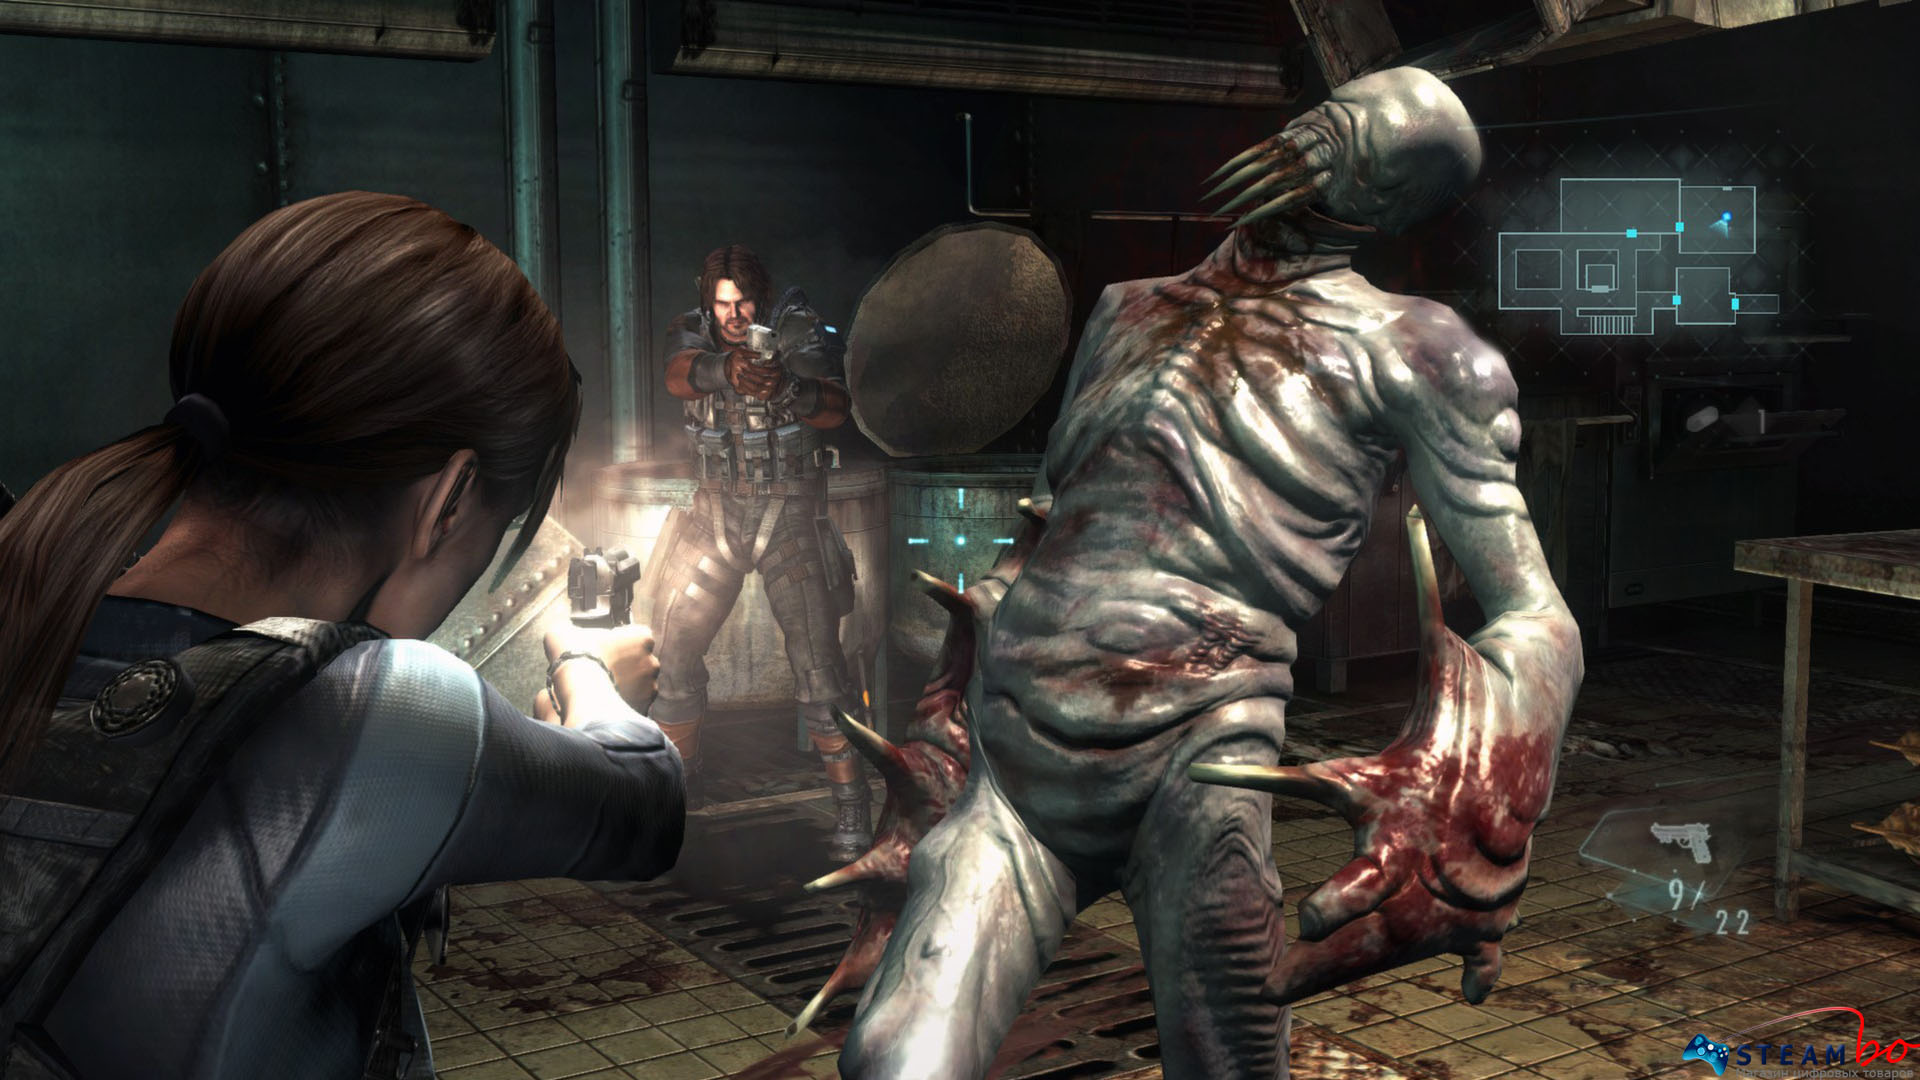 Resident Evil Revelations Region Free (Steam Gift / Key